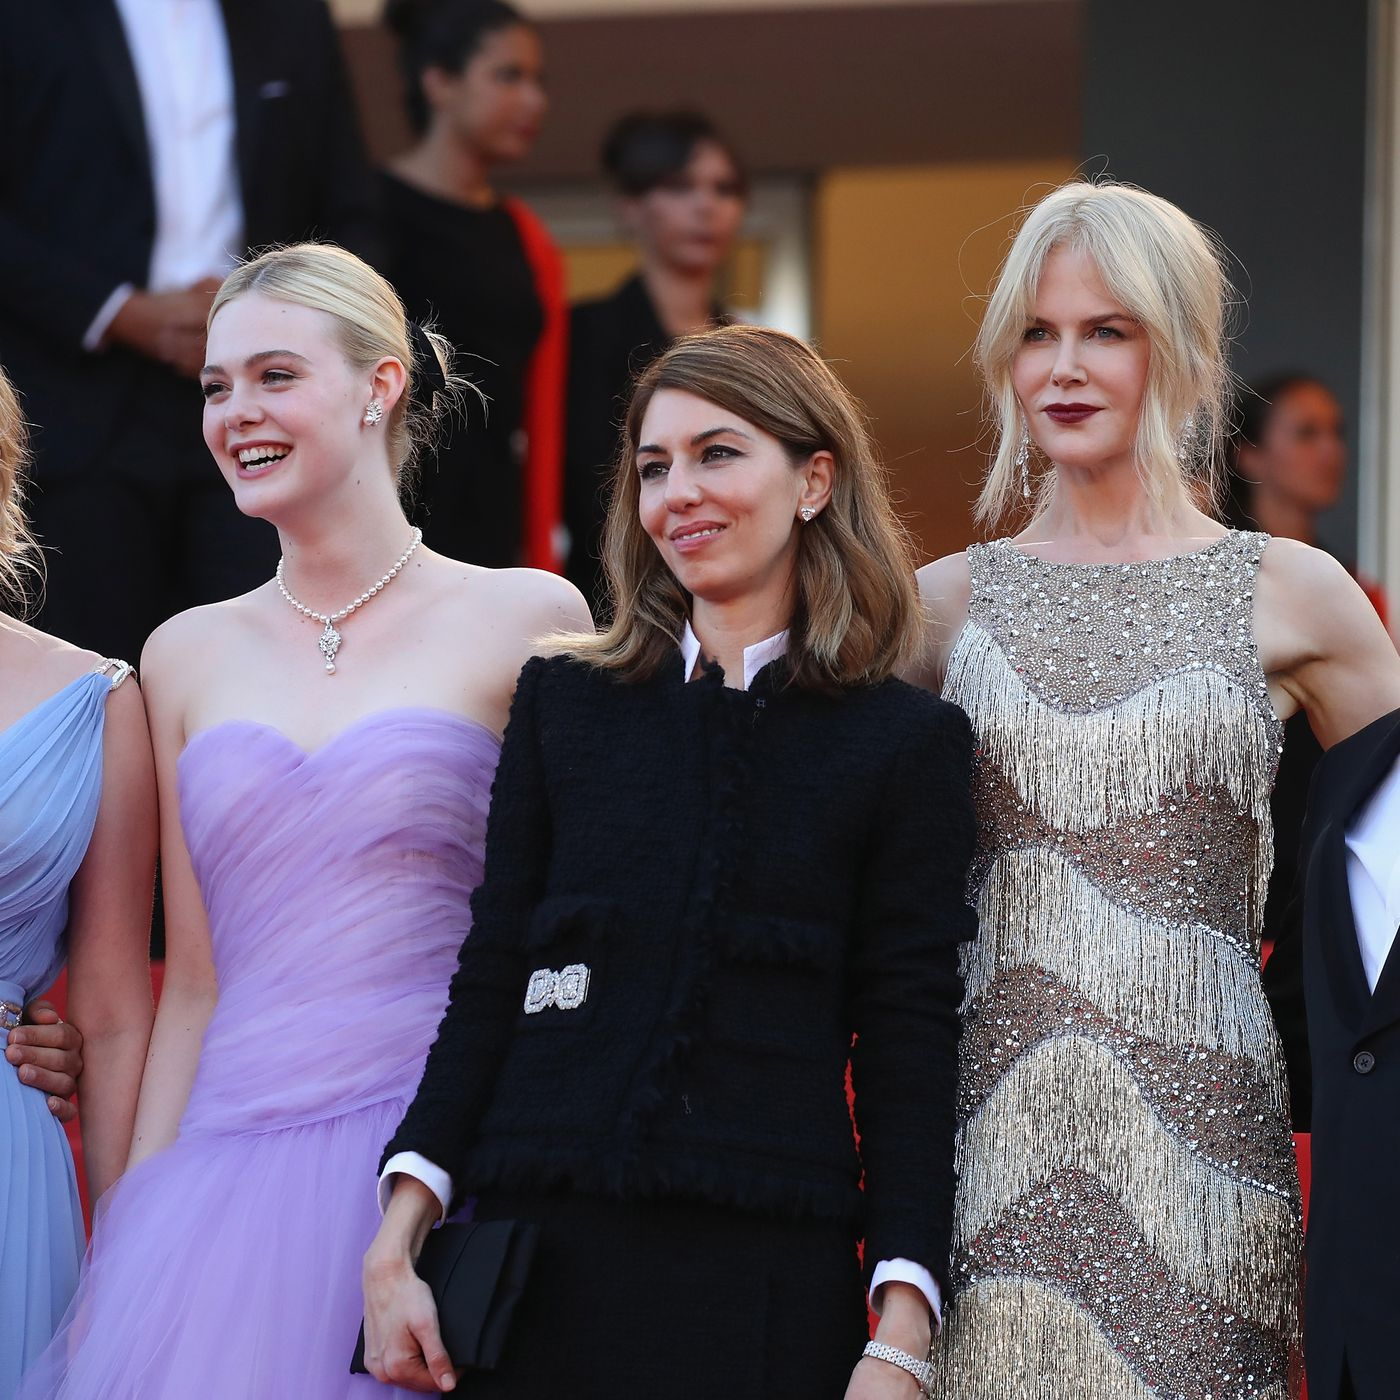 Sofia Coppola is the second woman to win best director at Cannes ...